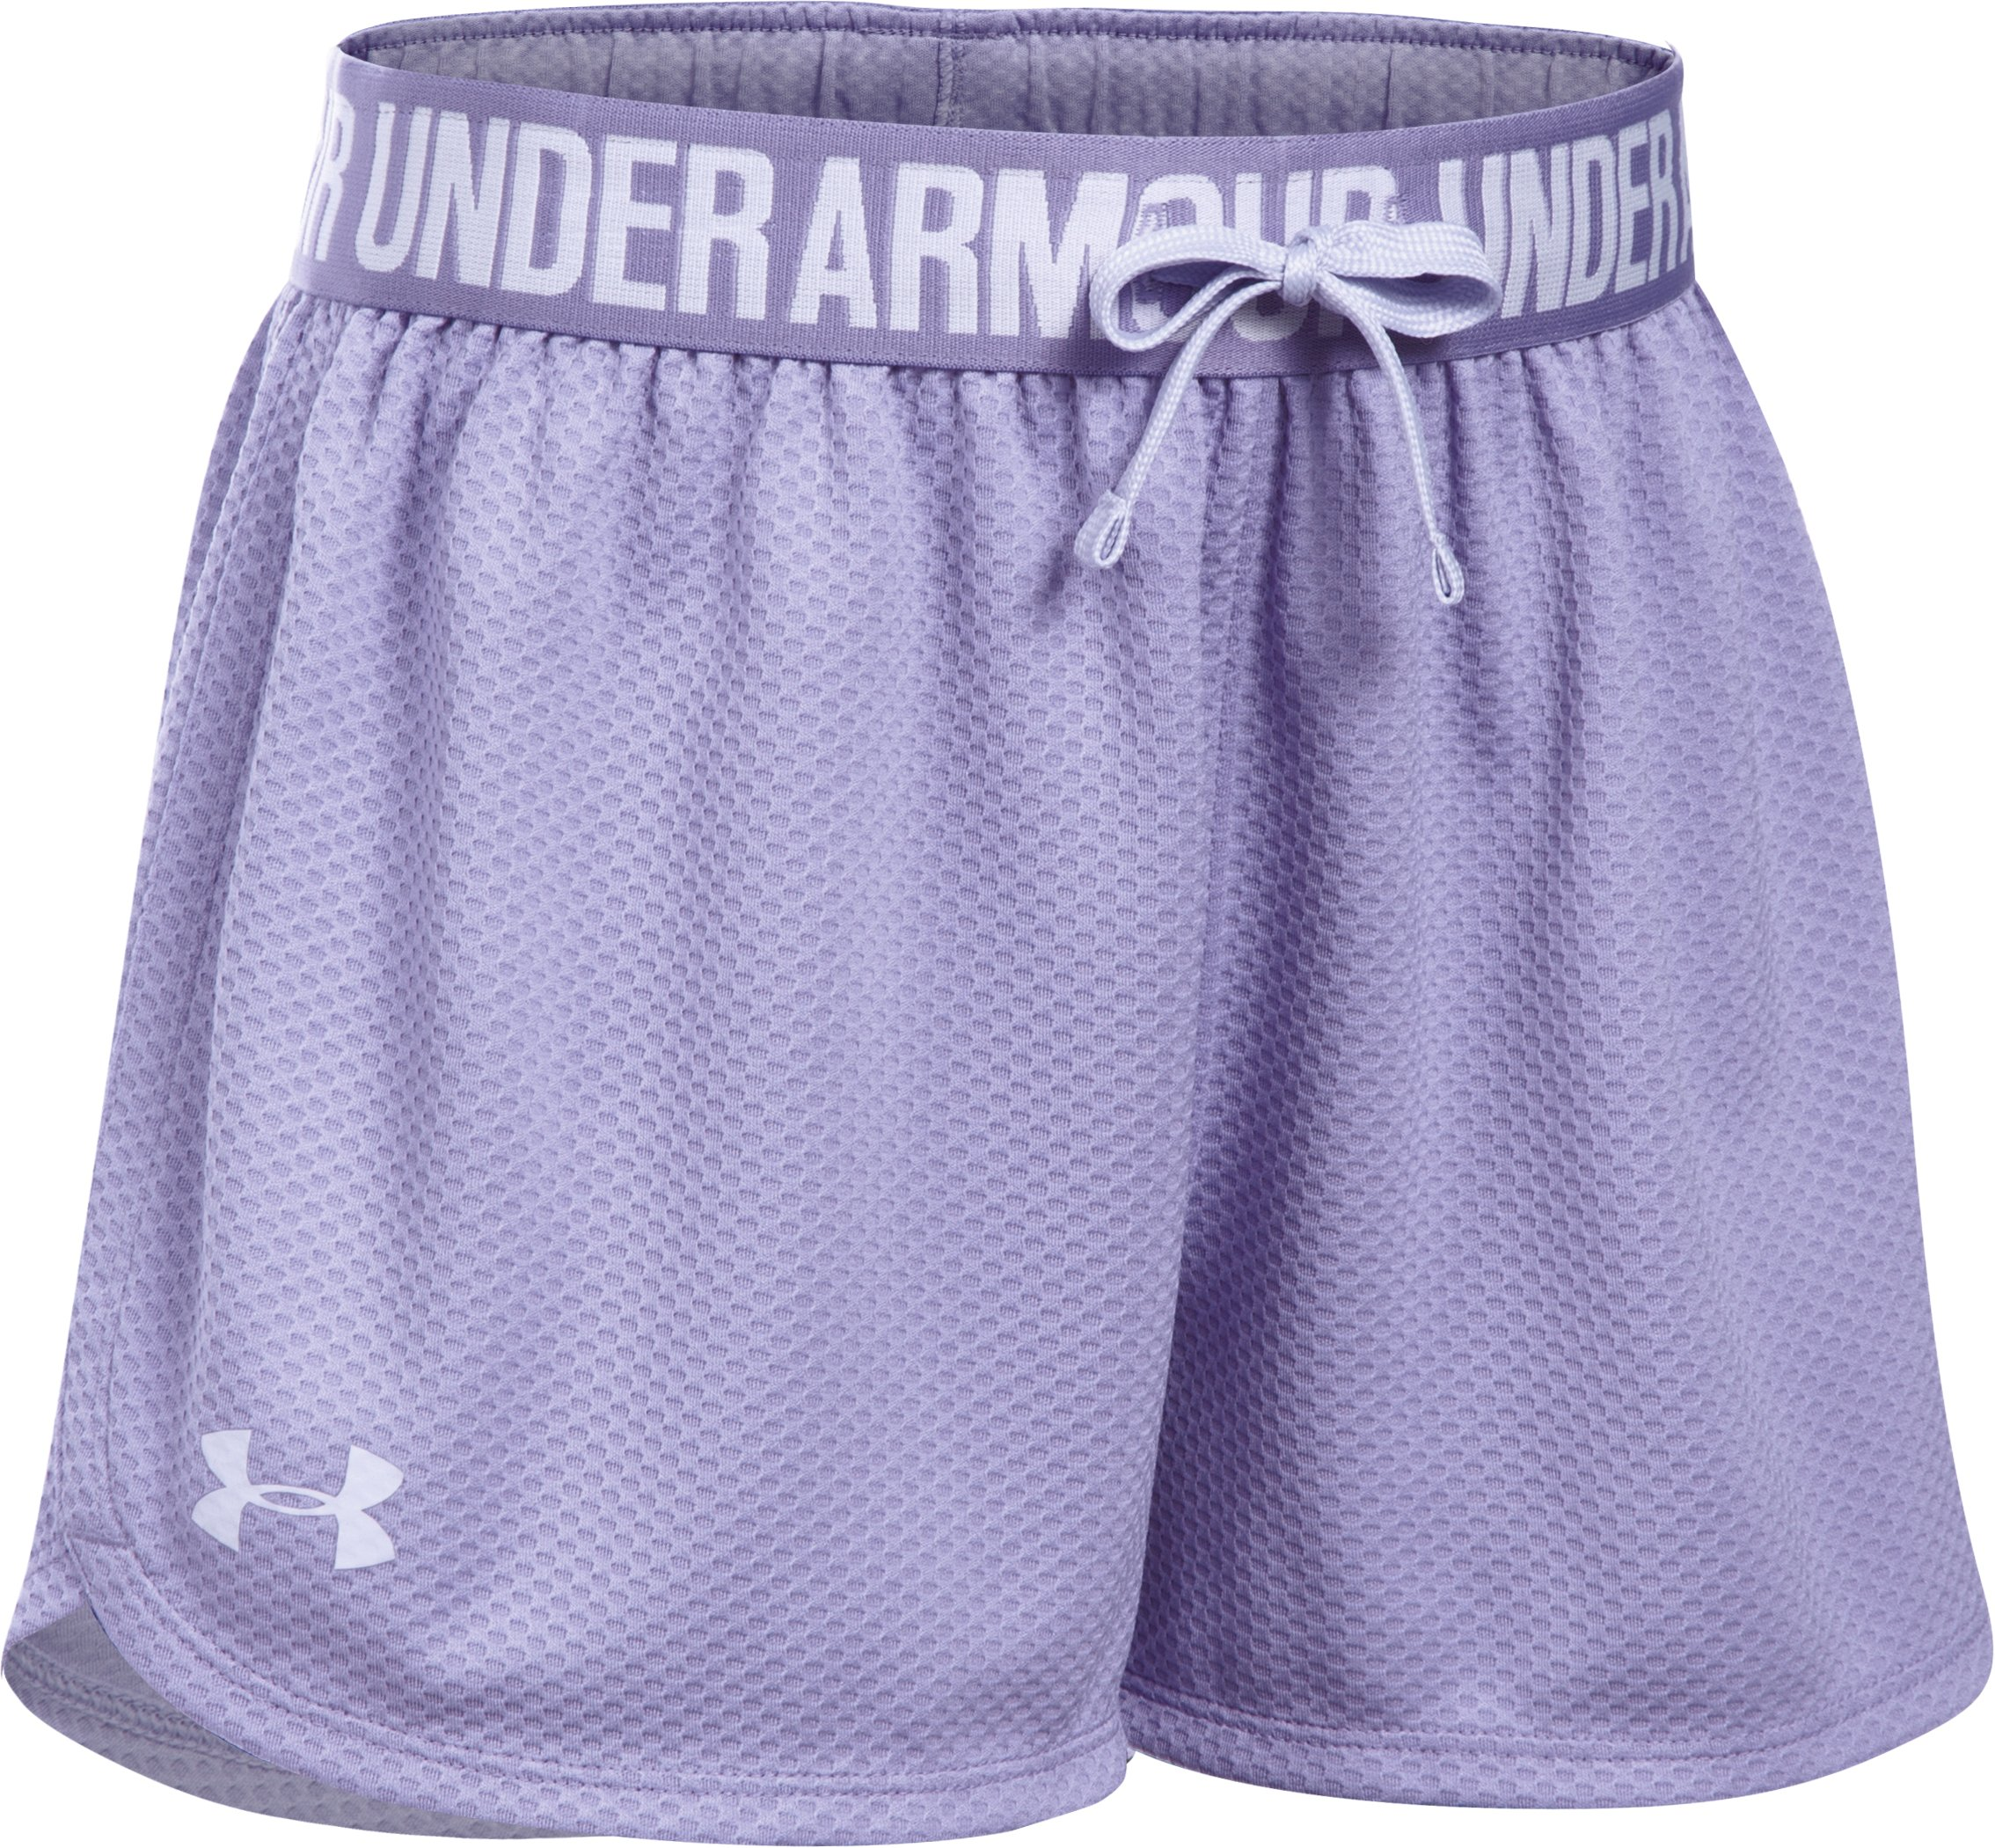 Girls' UA Play Up Mesh Shorts, DARK LAVENDER, undefined